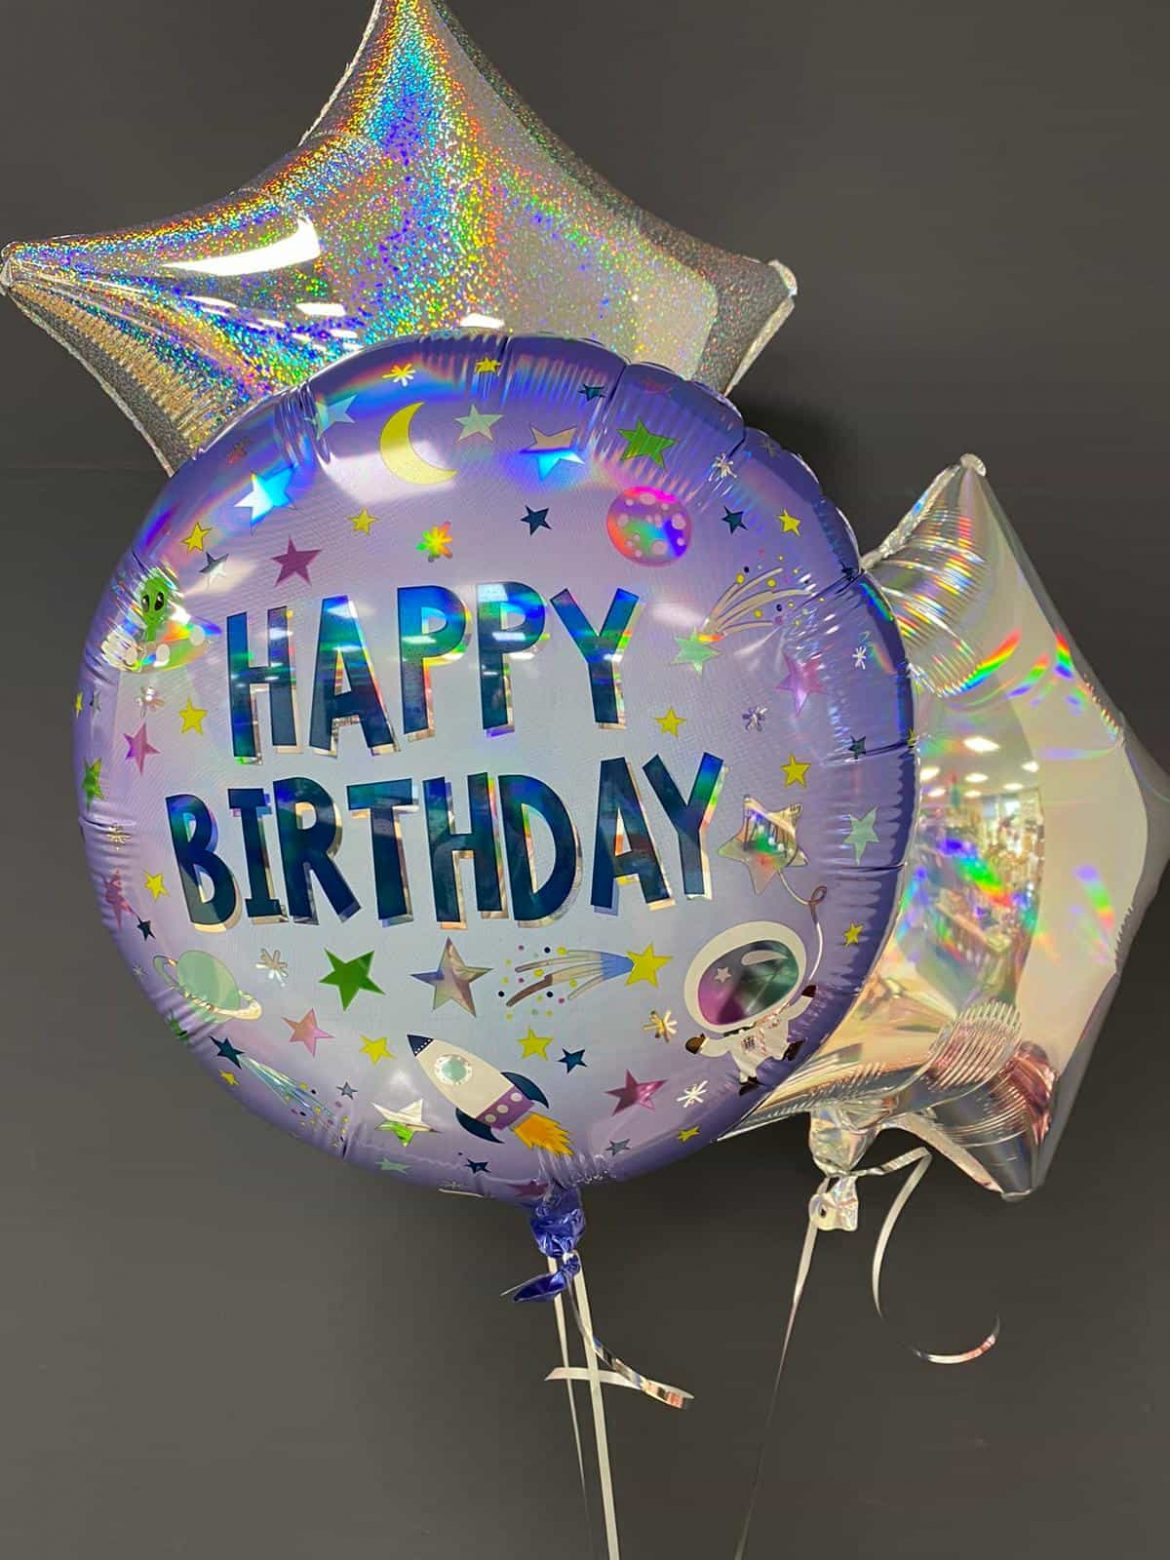 Happy Birthday € 5,50<br> Dekoballons je € 4,50 1